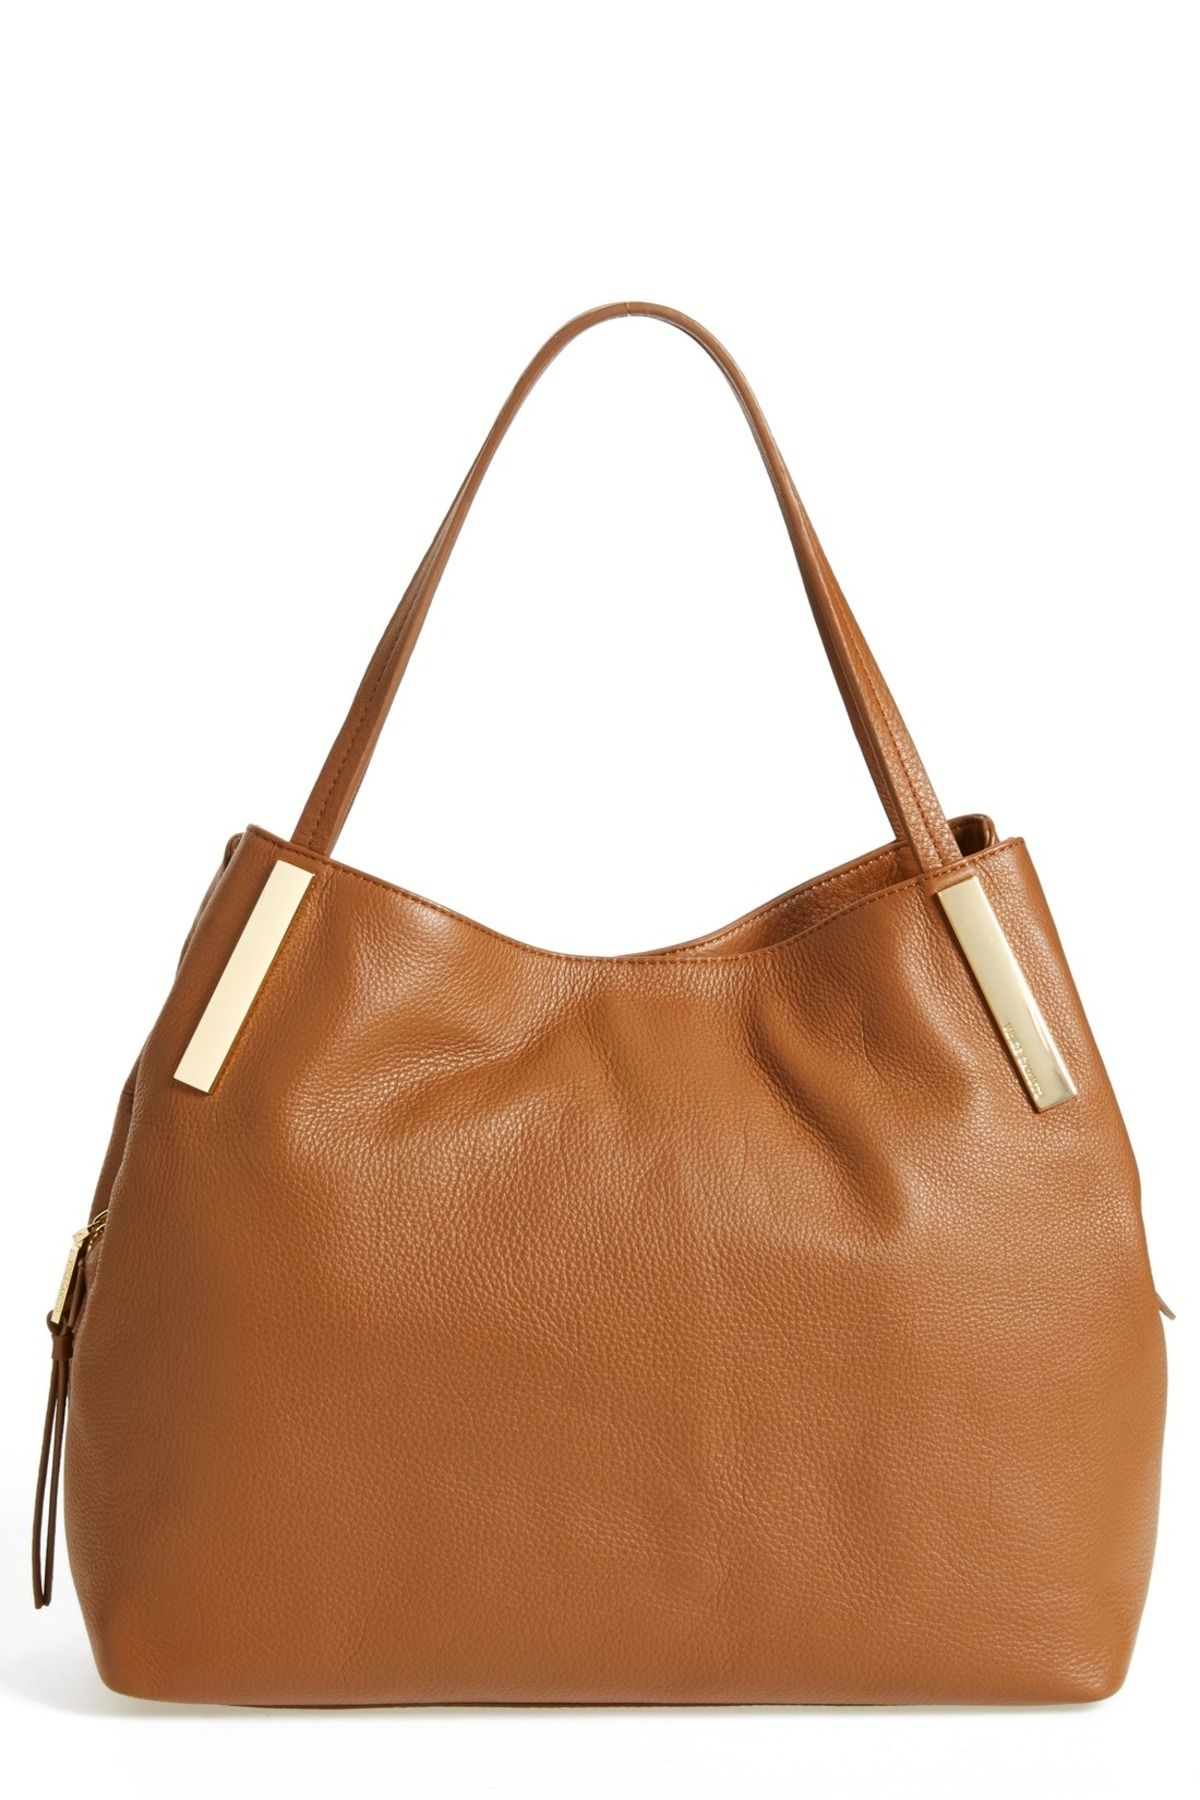 Vince Camuto | Teri Leather Tote #nordstromrack